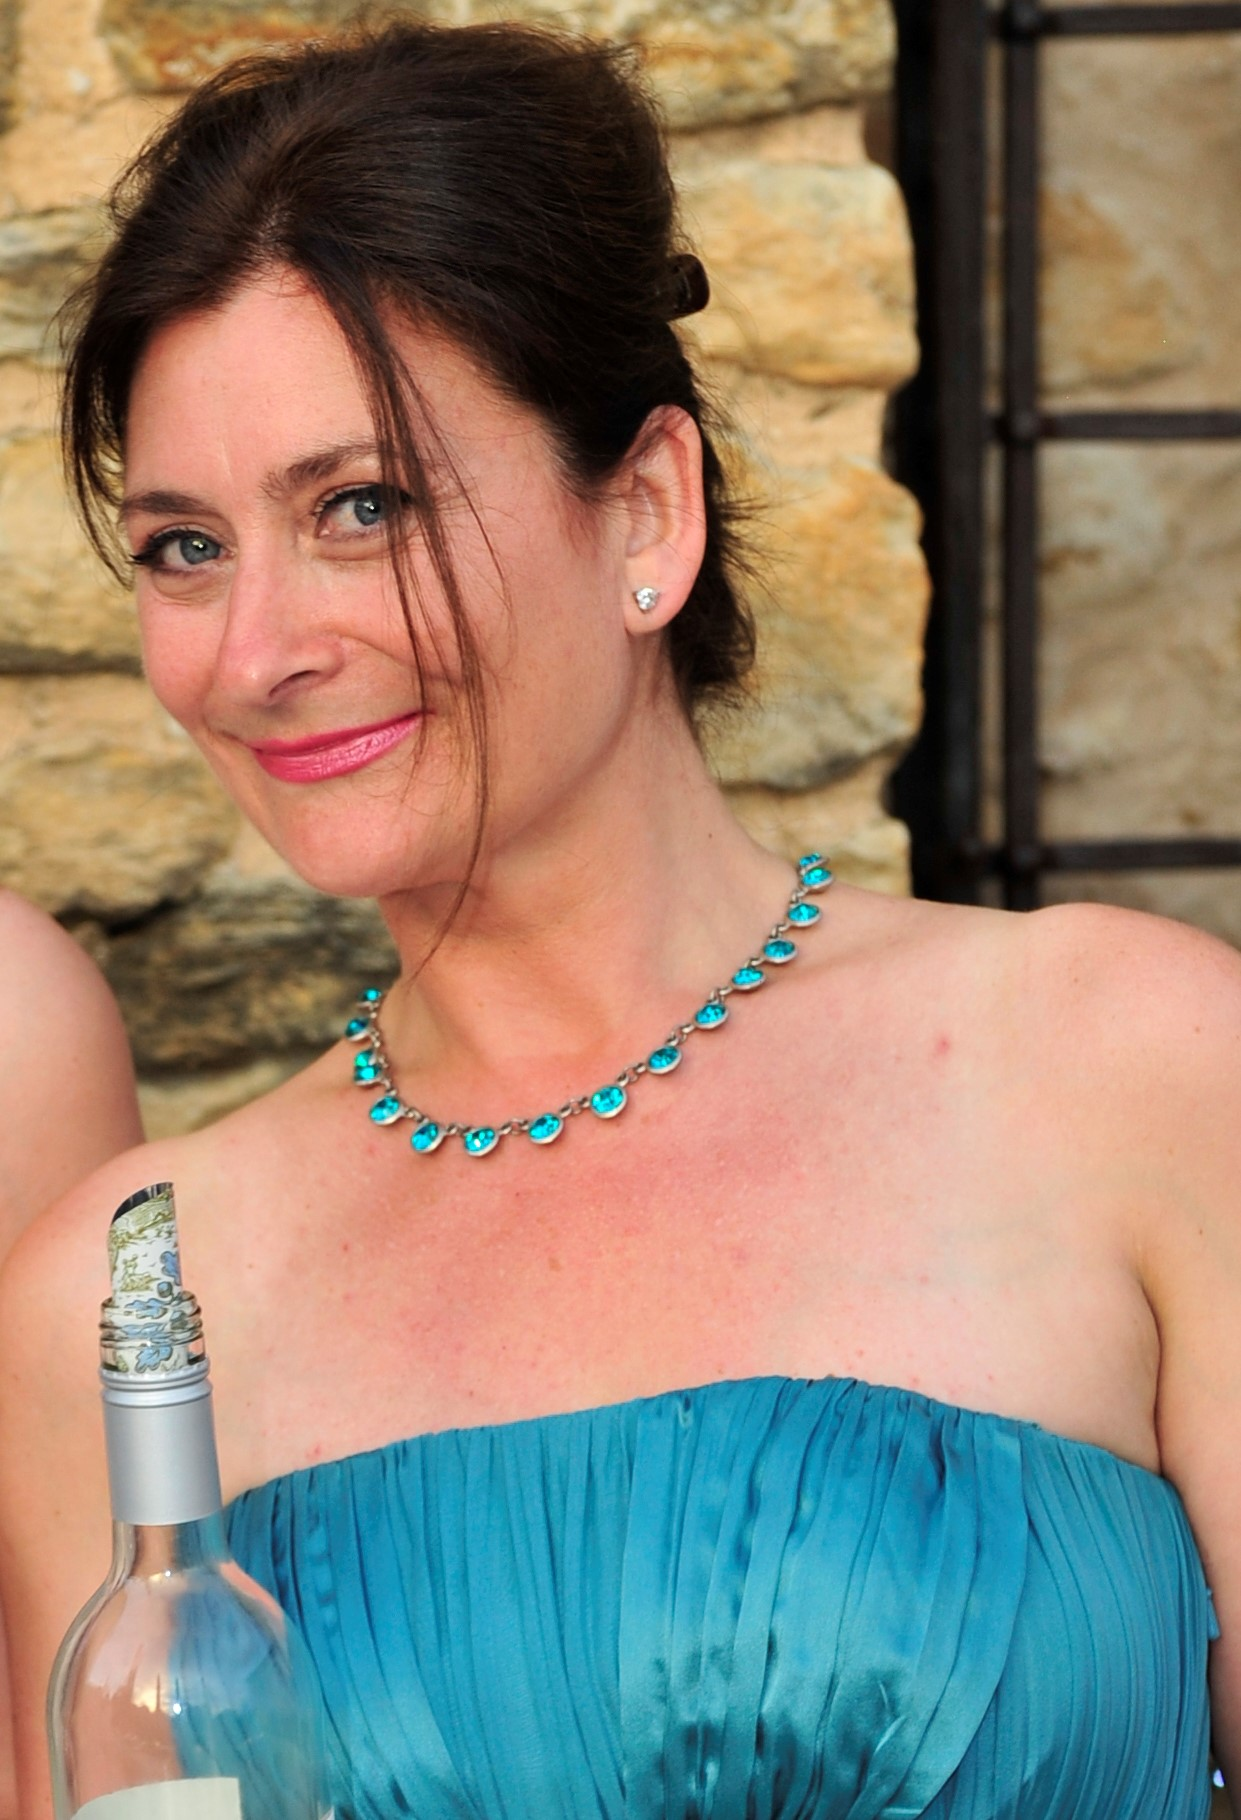 KAREN - The director of hospitality, Karen Glennon, has been managing La Verriere for over a decade with her trademark cheery style. She is also executive director of the renowned wine courses, including Extreme Wine experience, which wine enthusiasts from around the world attend once a year. She facilitates weekly rentals.